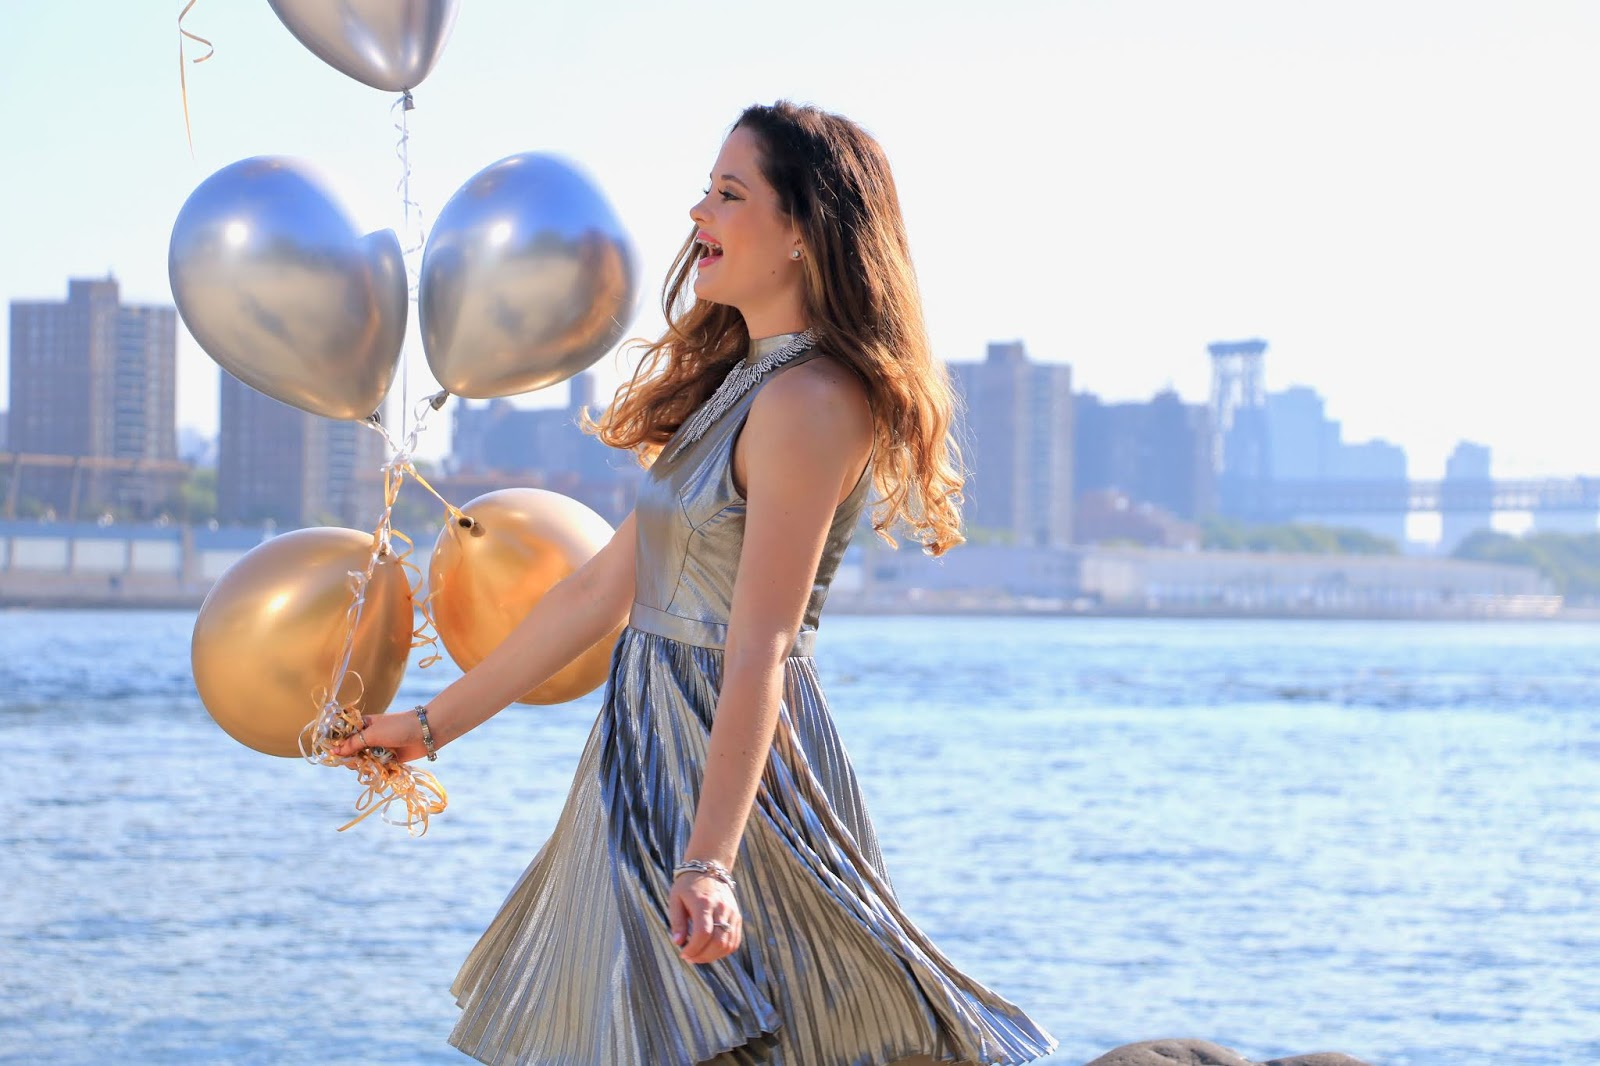 Nyc fashion blogger Kathleen Harper's birthday photo shoot in Brooklyn